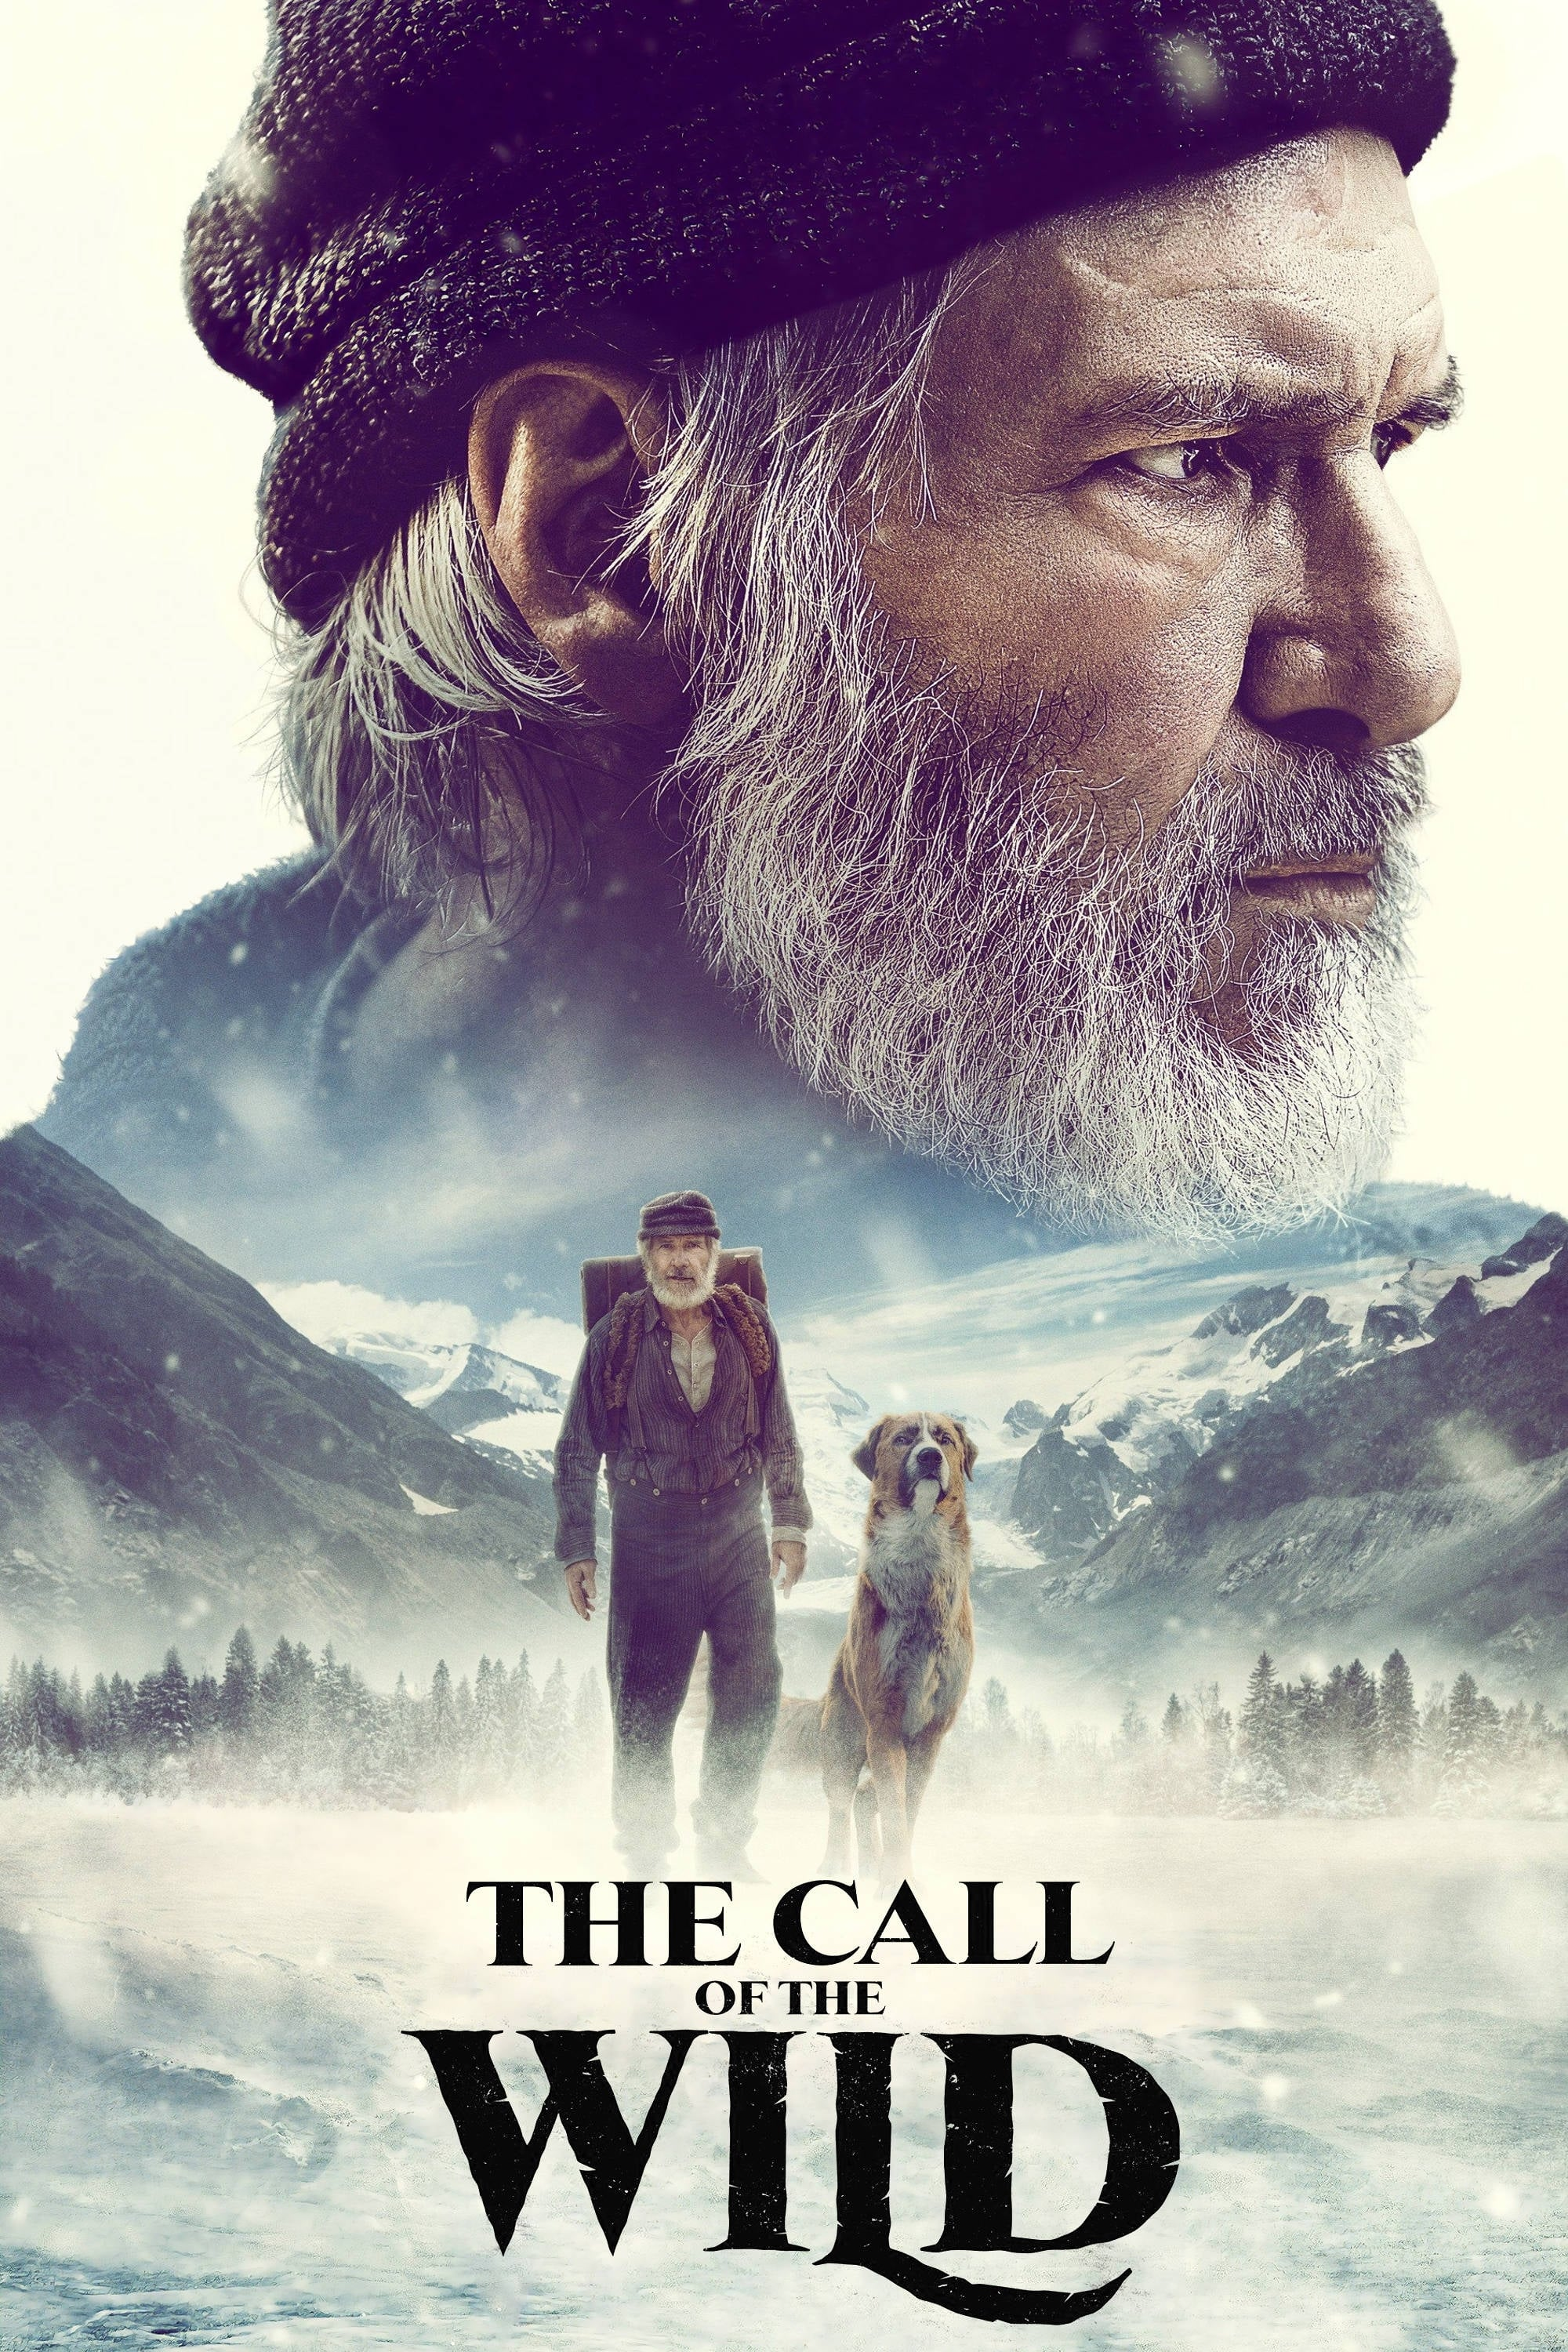 image for The Call of the Wild